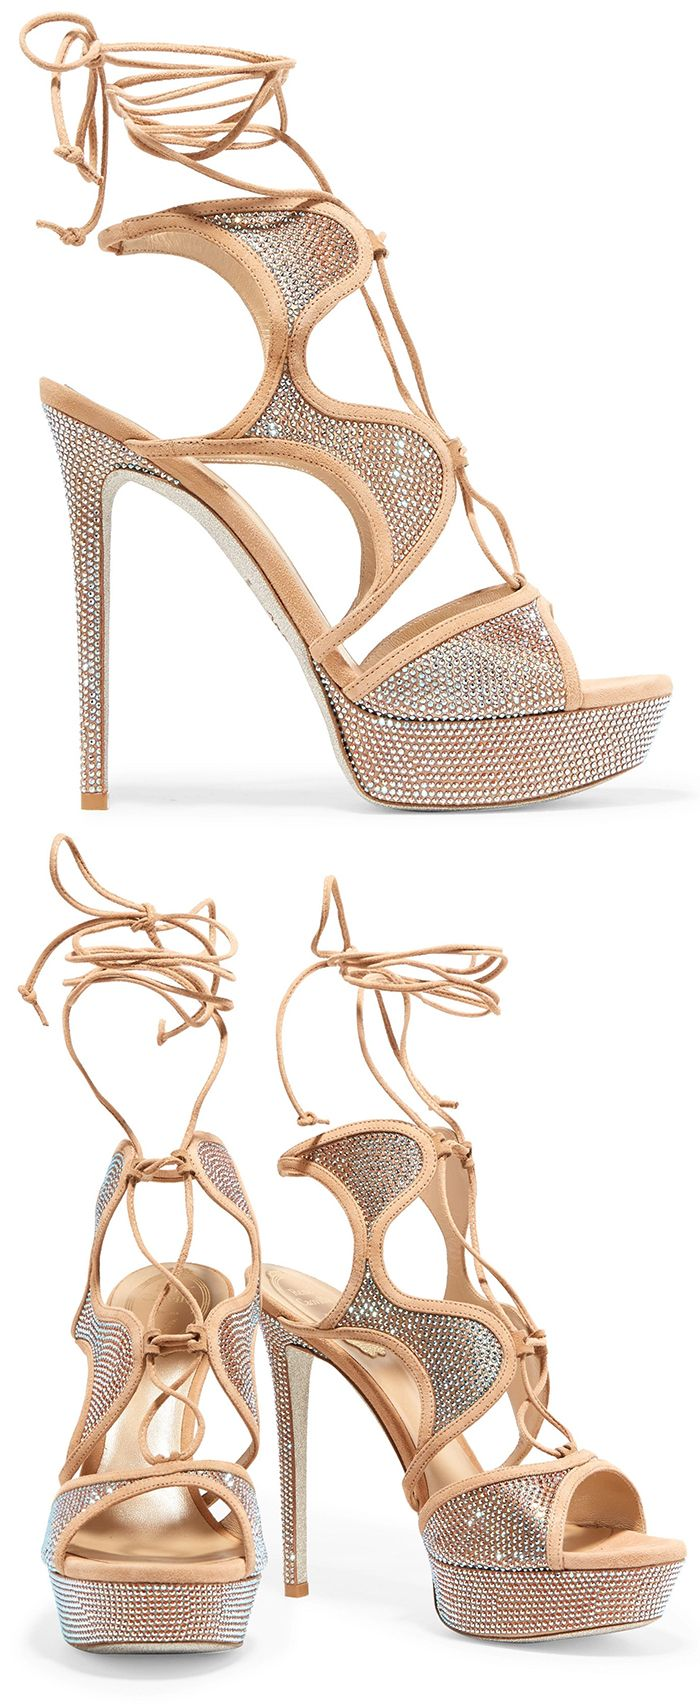 Nude Crystal Party Shoes. RENE' CAOVILLA Crystal-embellished lace, suede high he… – Mode